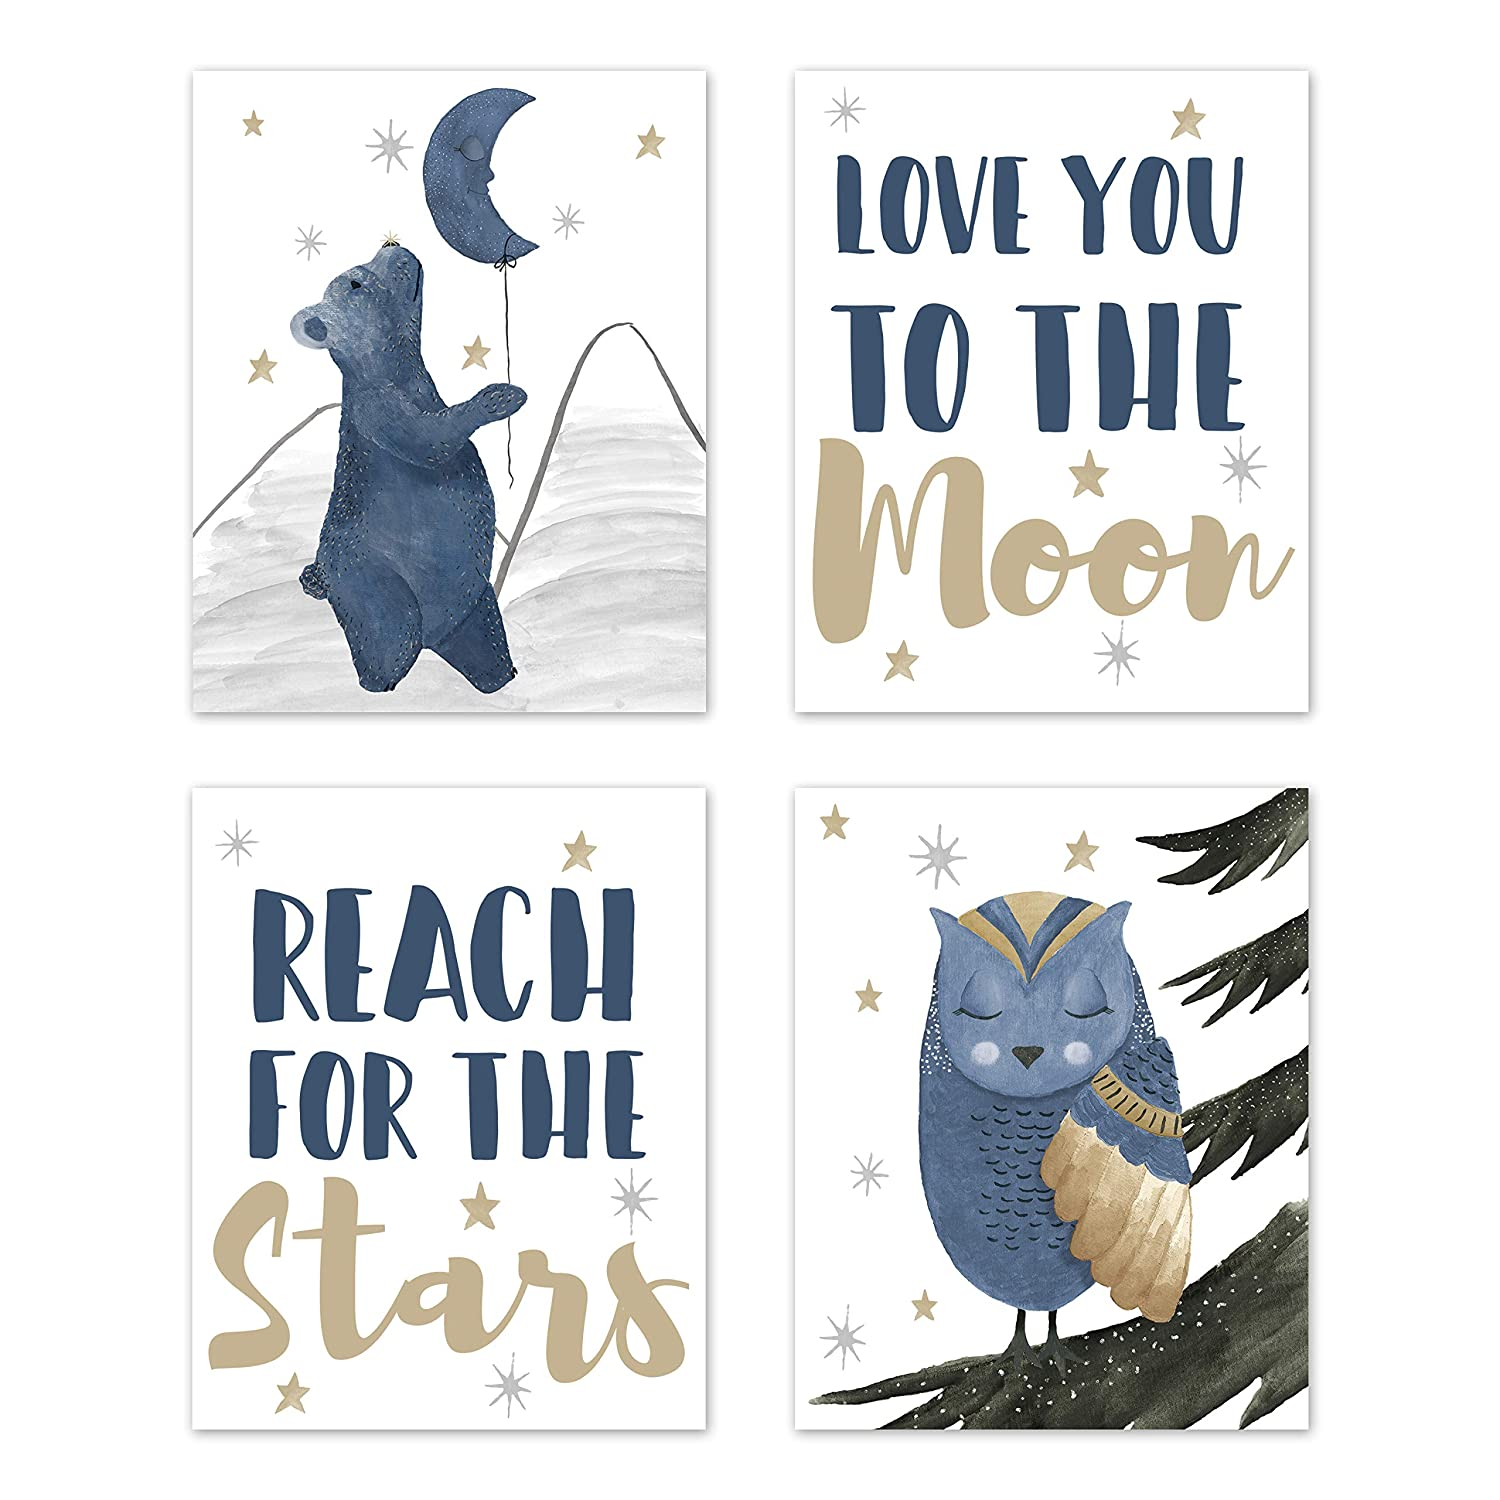 Sweet Jojo Designs Woodland Bear and Owl Wall Art Prints Room Decor for Baby, Nursery, and Kids - Set of 4 - Navy Blue, Grey, Gold and Black Celestial Moon Star Watercolor Forest Animal